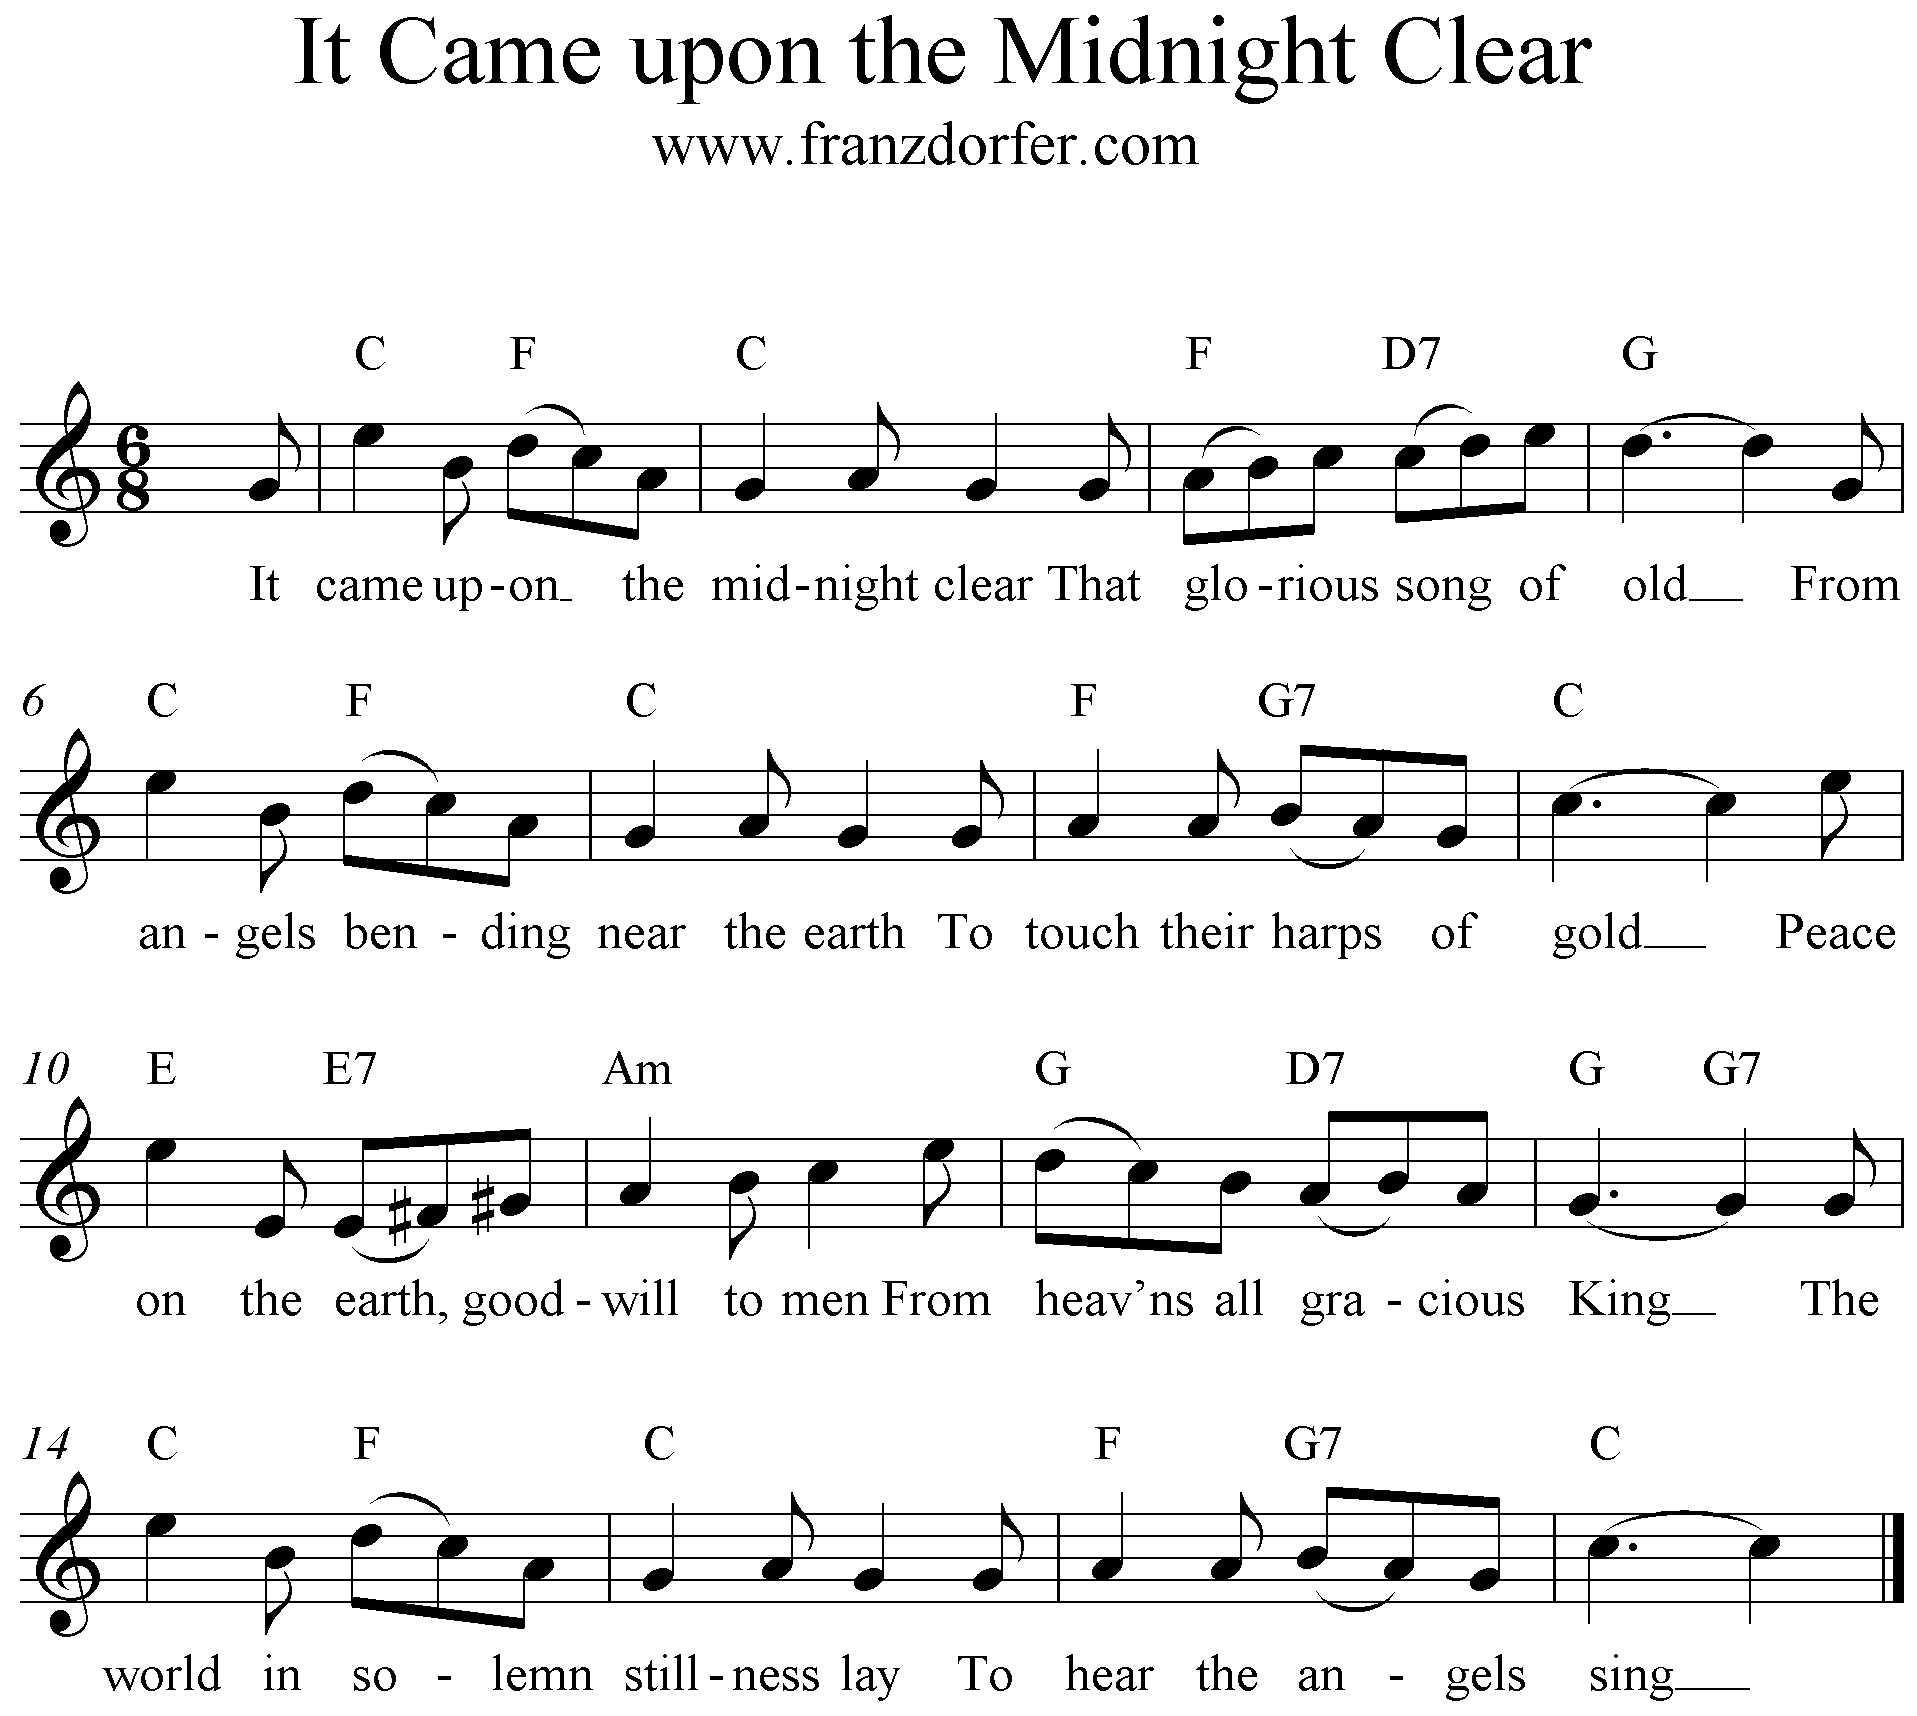 C-Dur, It Came Upon the Midnight Clear, Noten, freesheetmusic